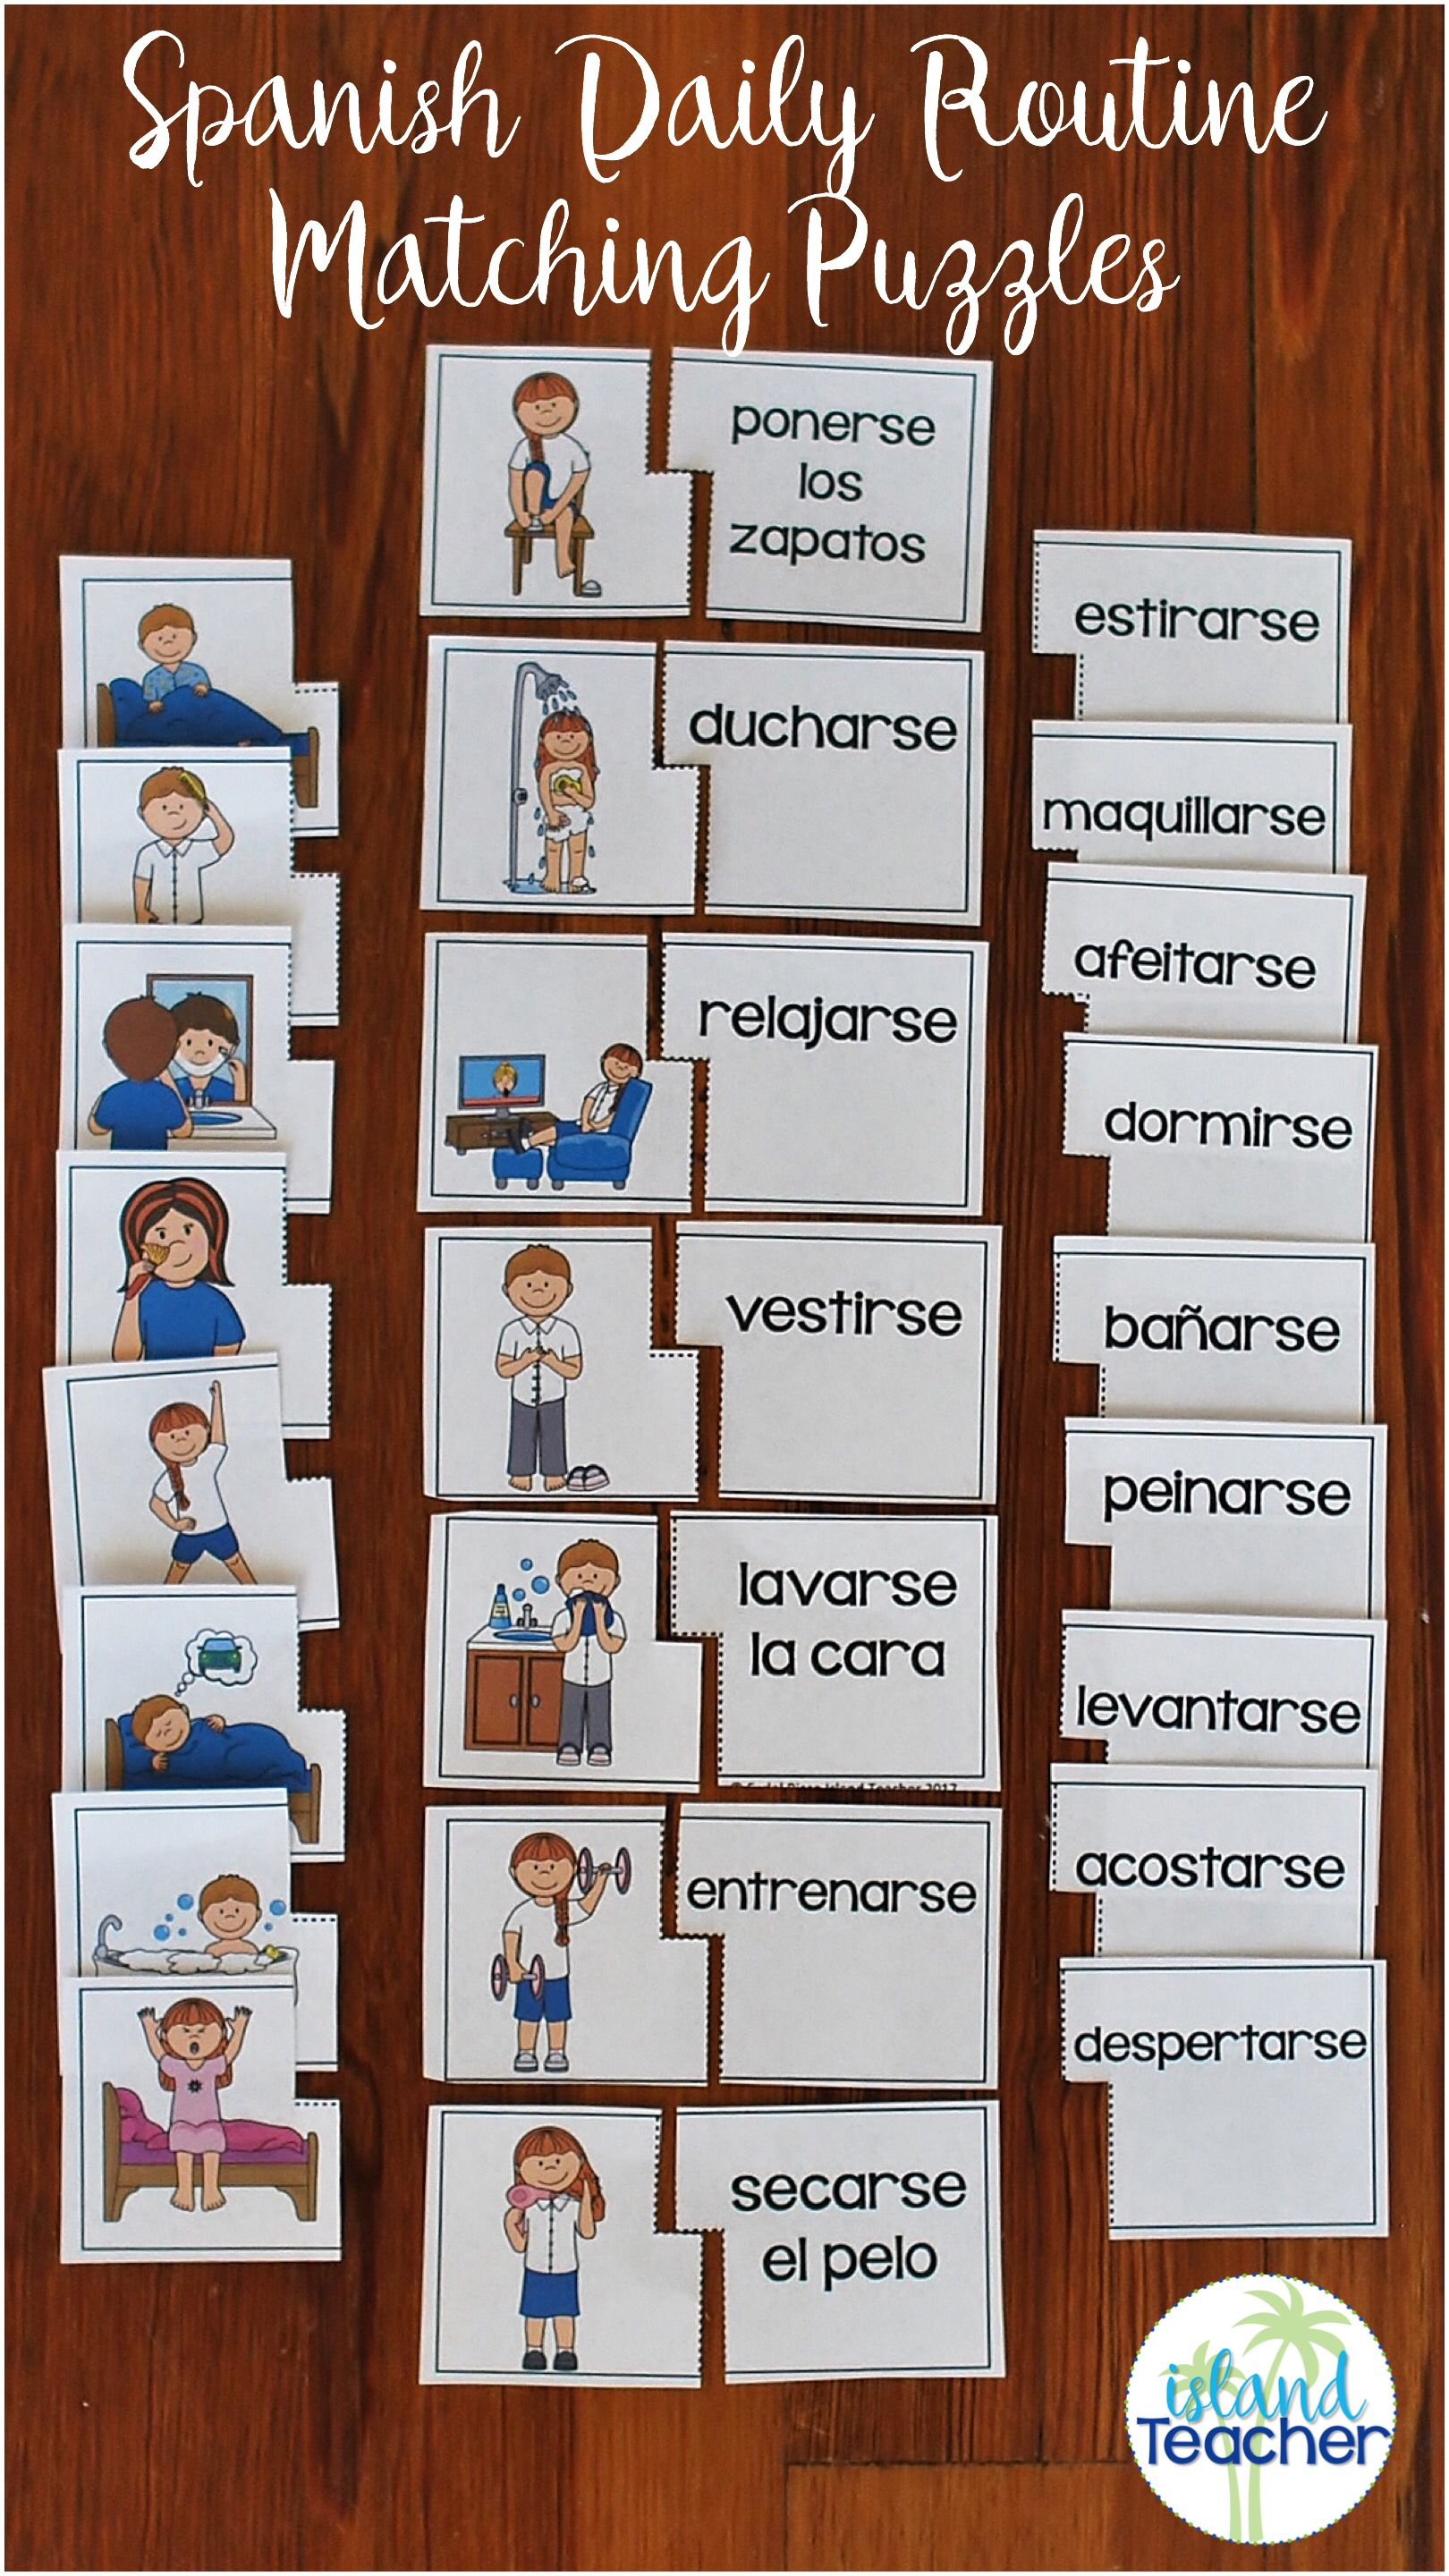 Spanish Daily Routines Reflexive Verbs Puzzles Reflexive Verbs Spanish Reflexive Verbs Spanish Lessons For Kids